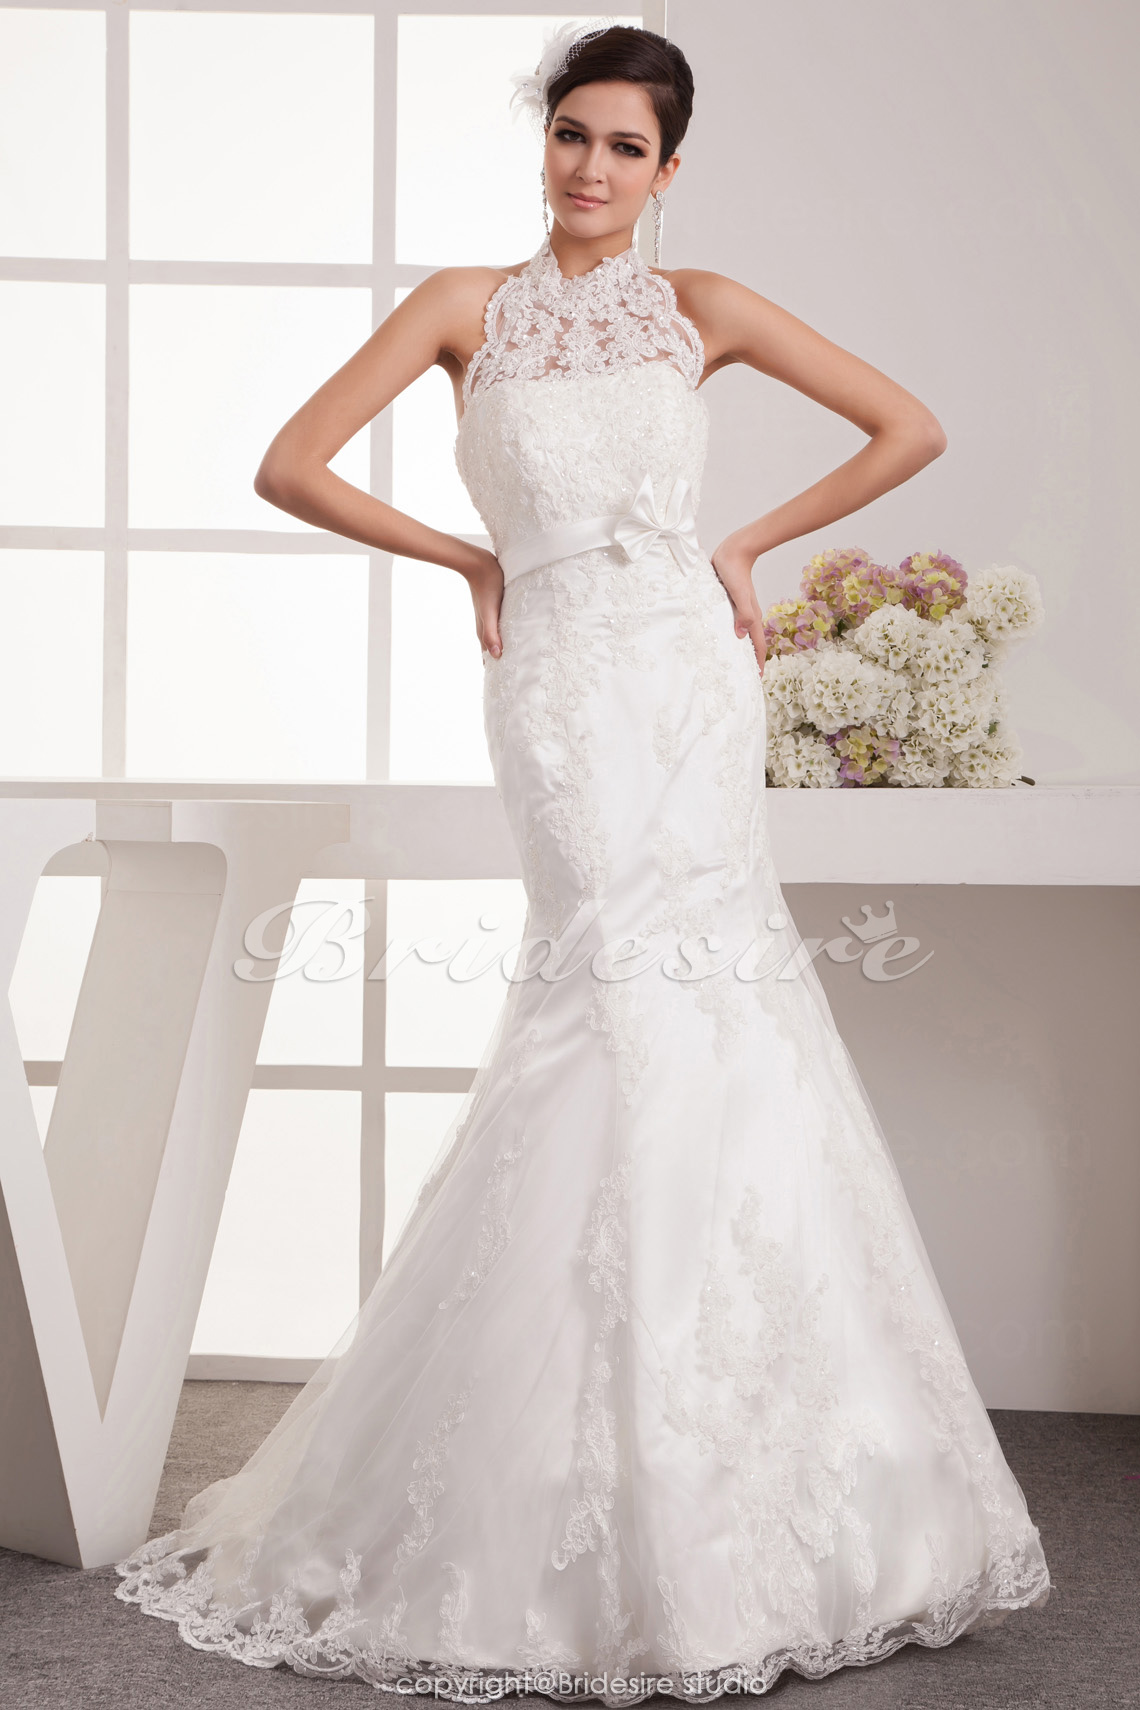 Trumpet/Mermaid High Neck Floor-length Sleeveless Satin Lace Wedding Dress